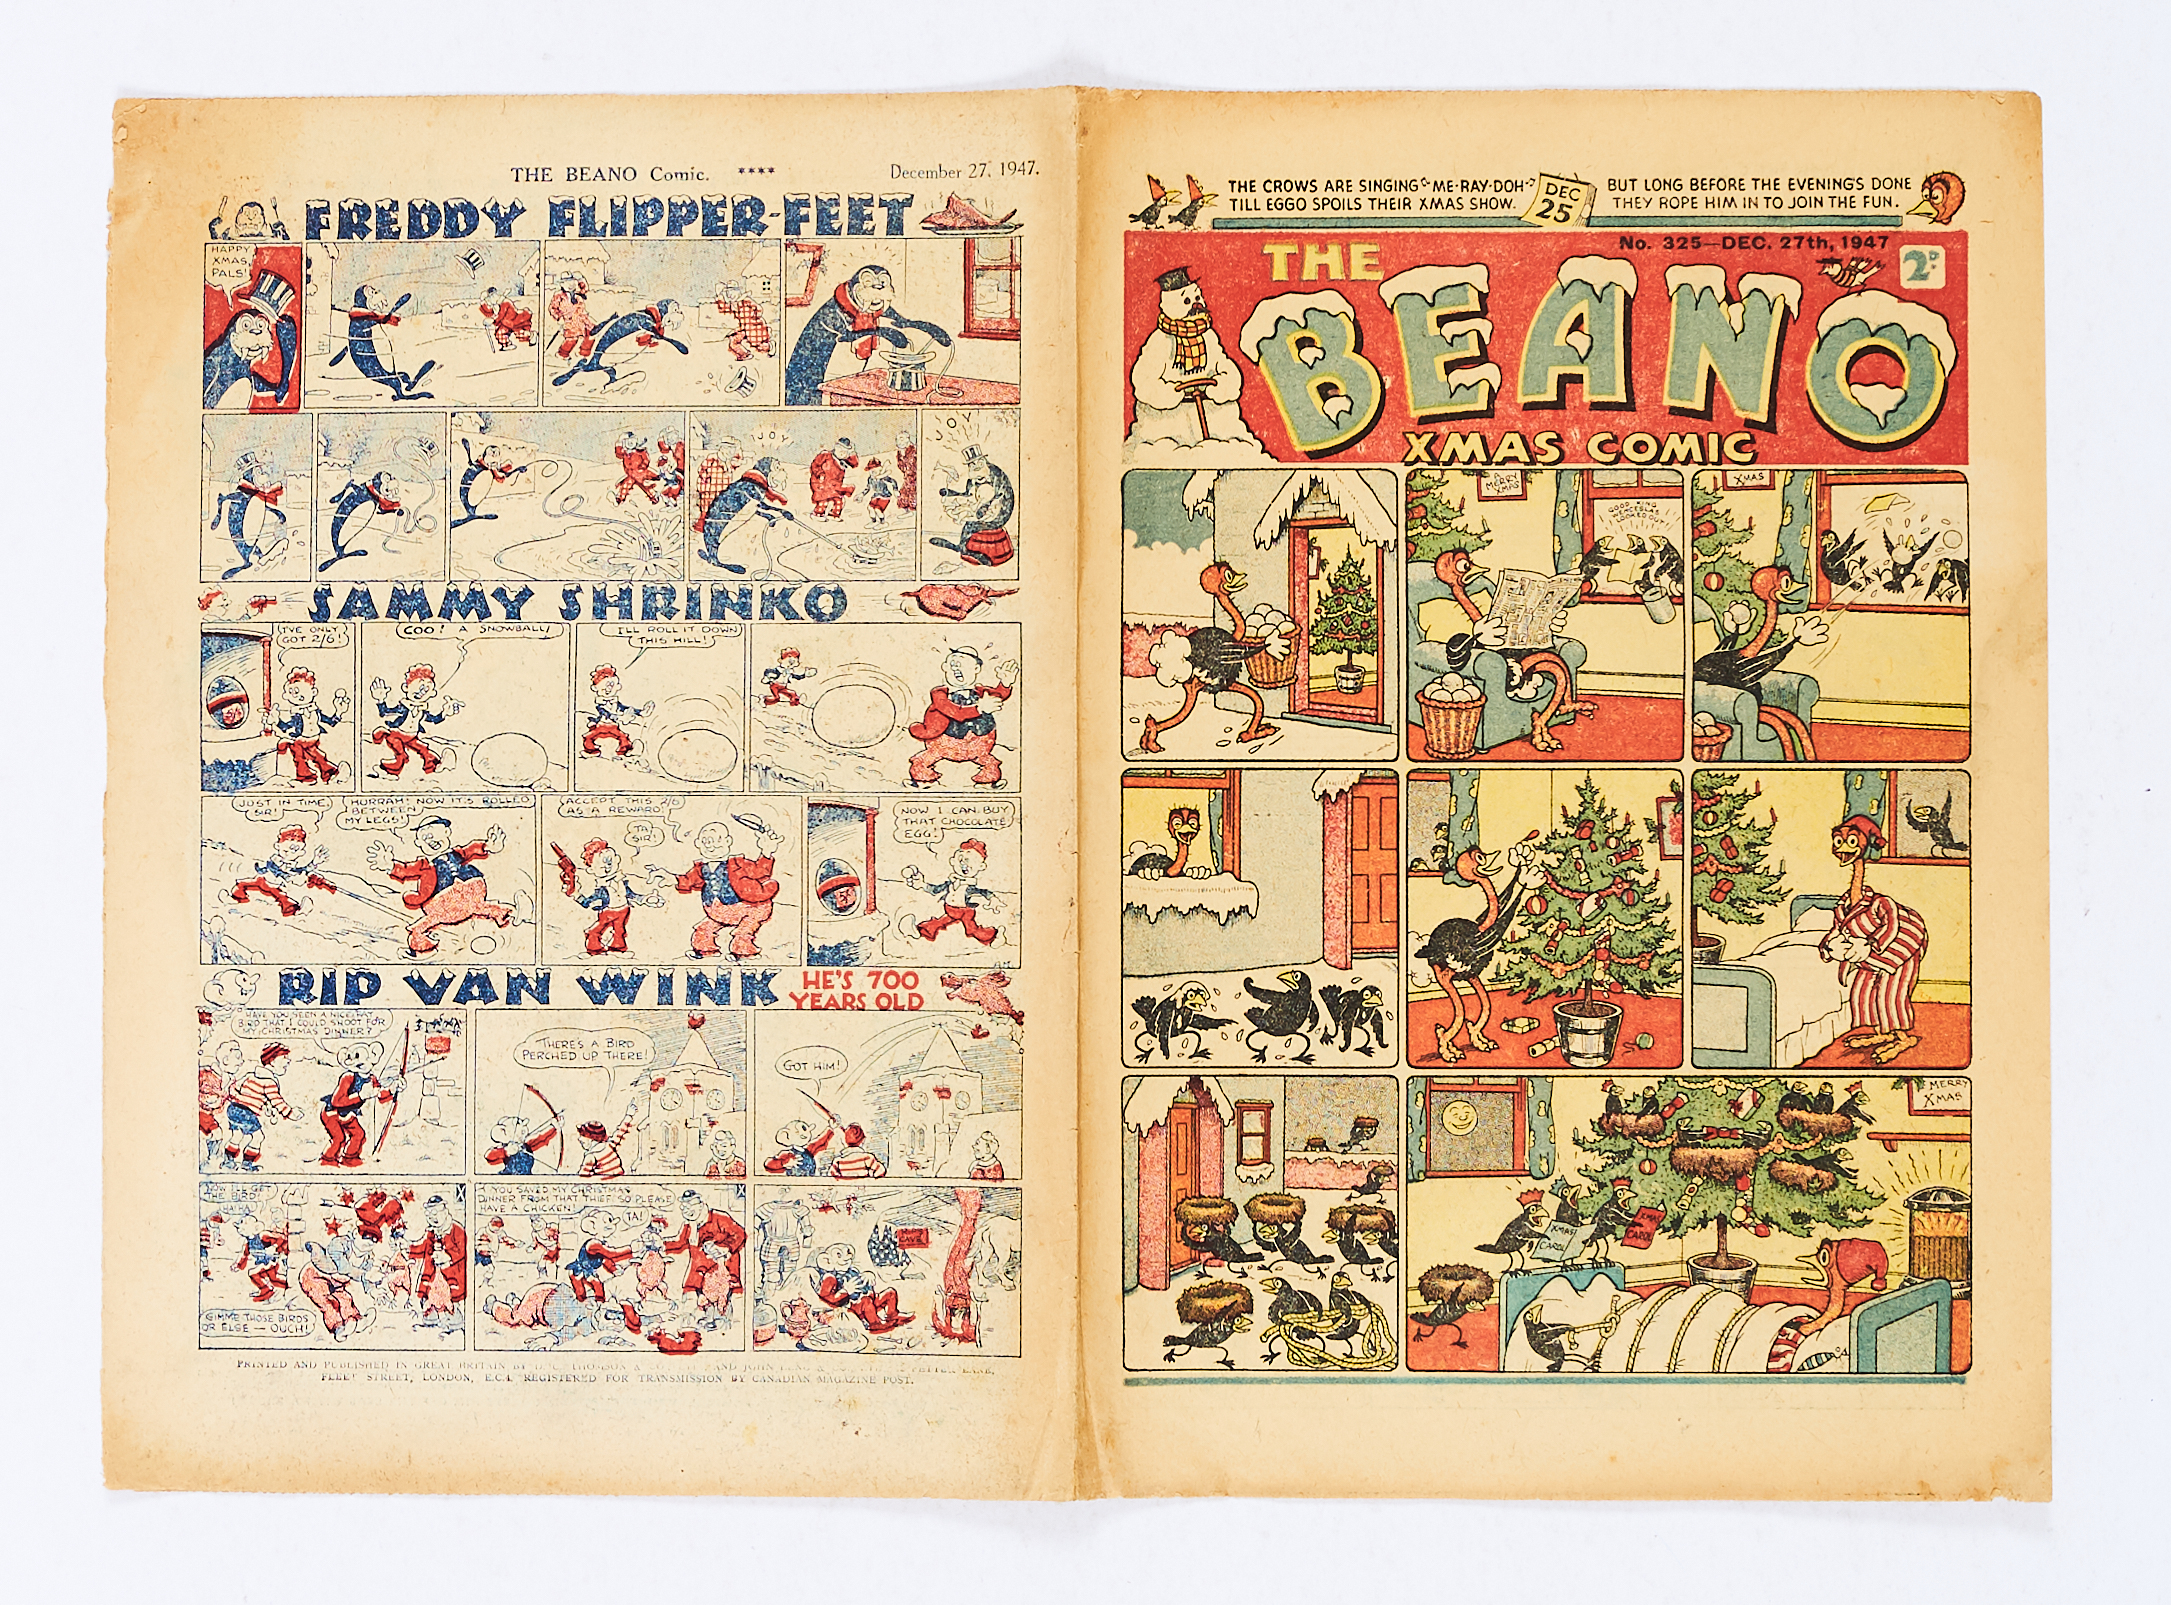 Lot 33 - Beano 325 (1947) Xmas Comic. Tanned cover [vg]. No Reserve